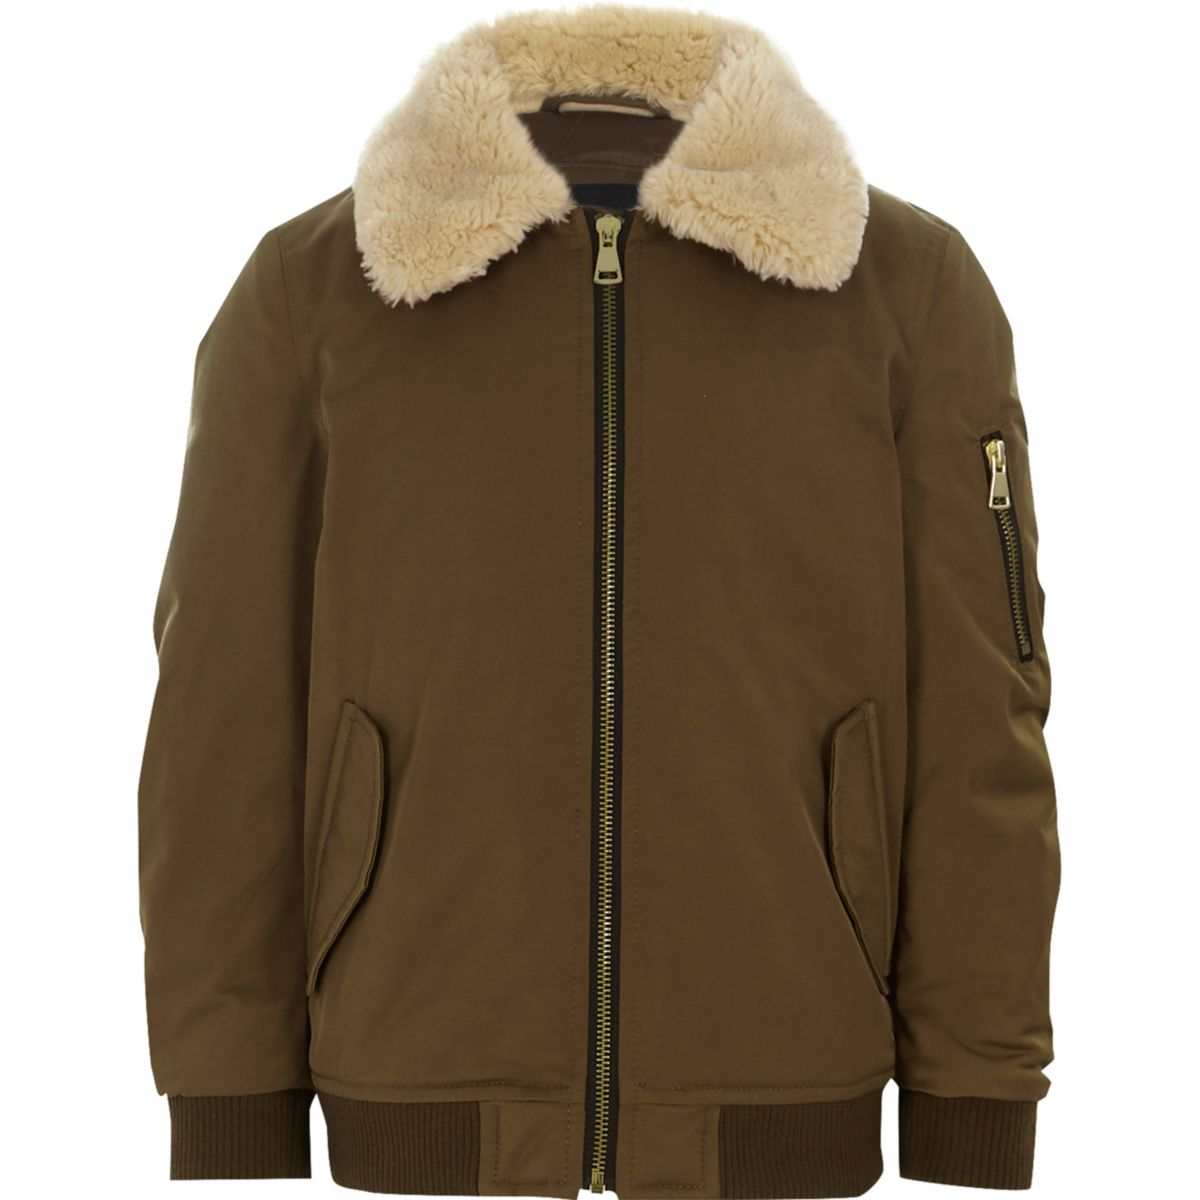 Boys River Island Sale